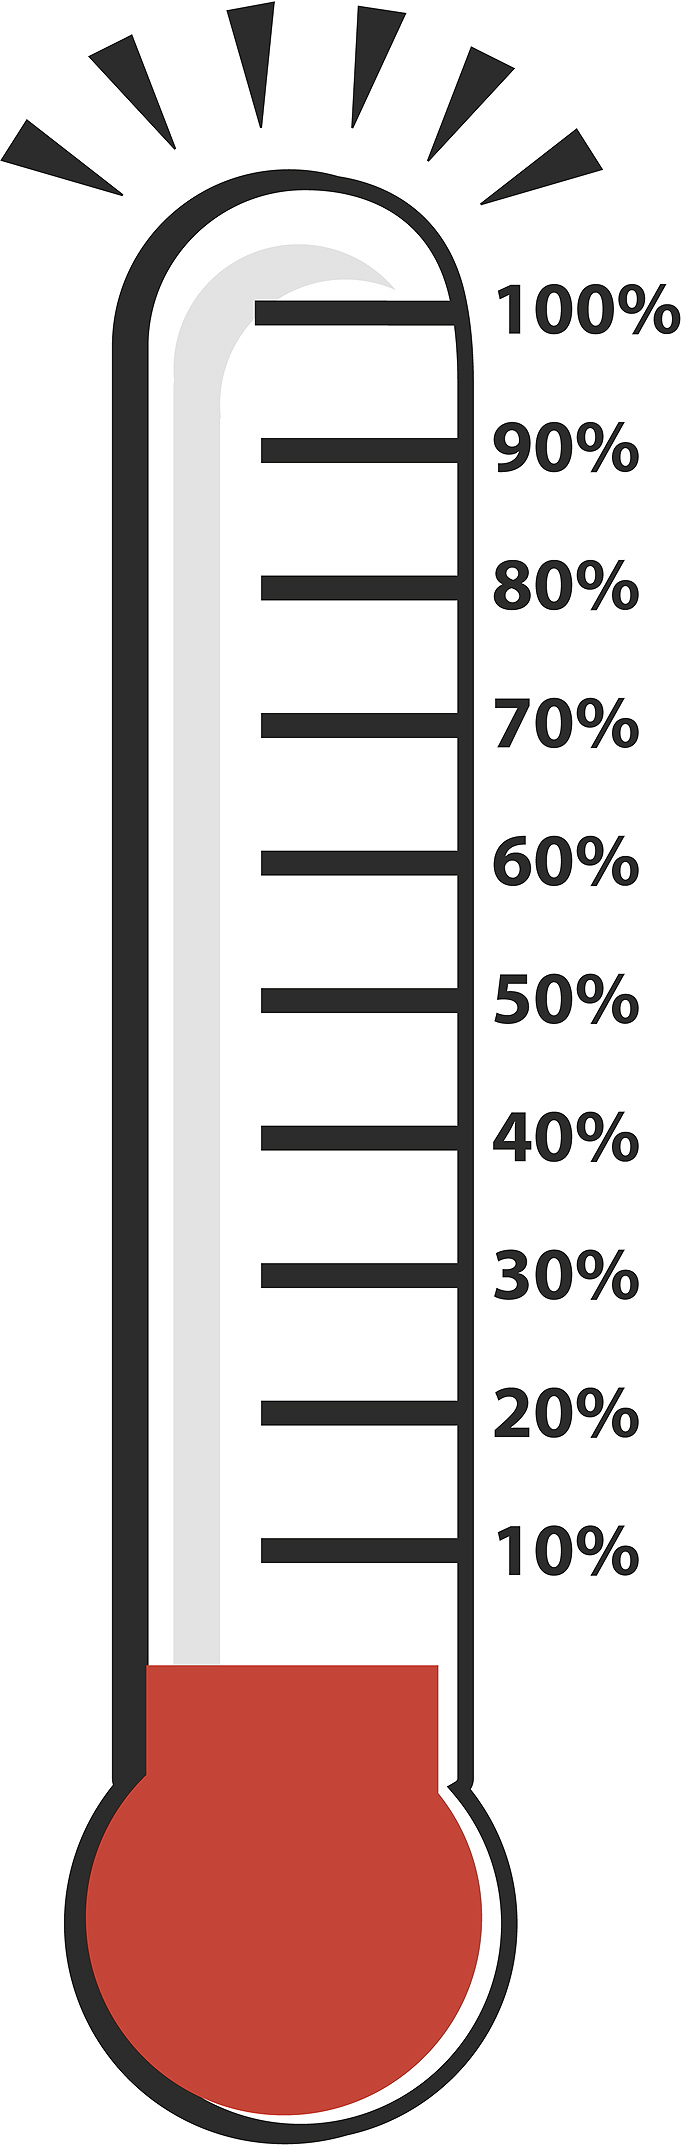 Fundraising Goal Thermometer Clipart - Clipart Kid